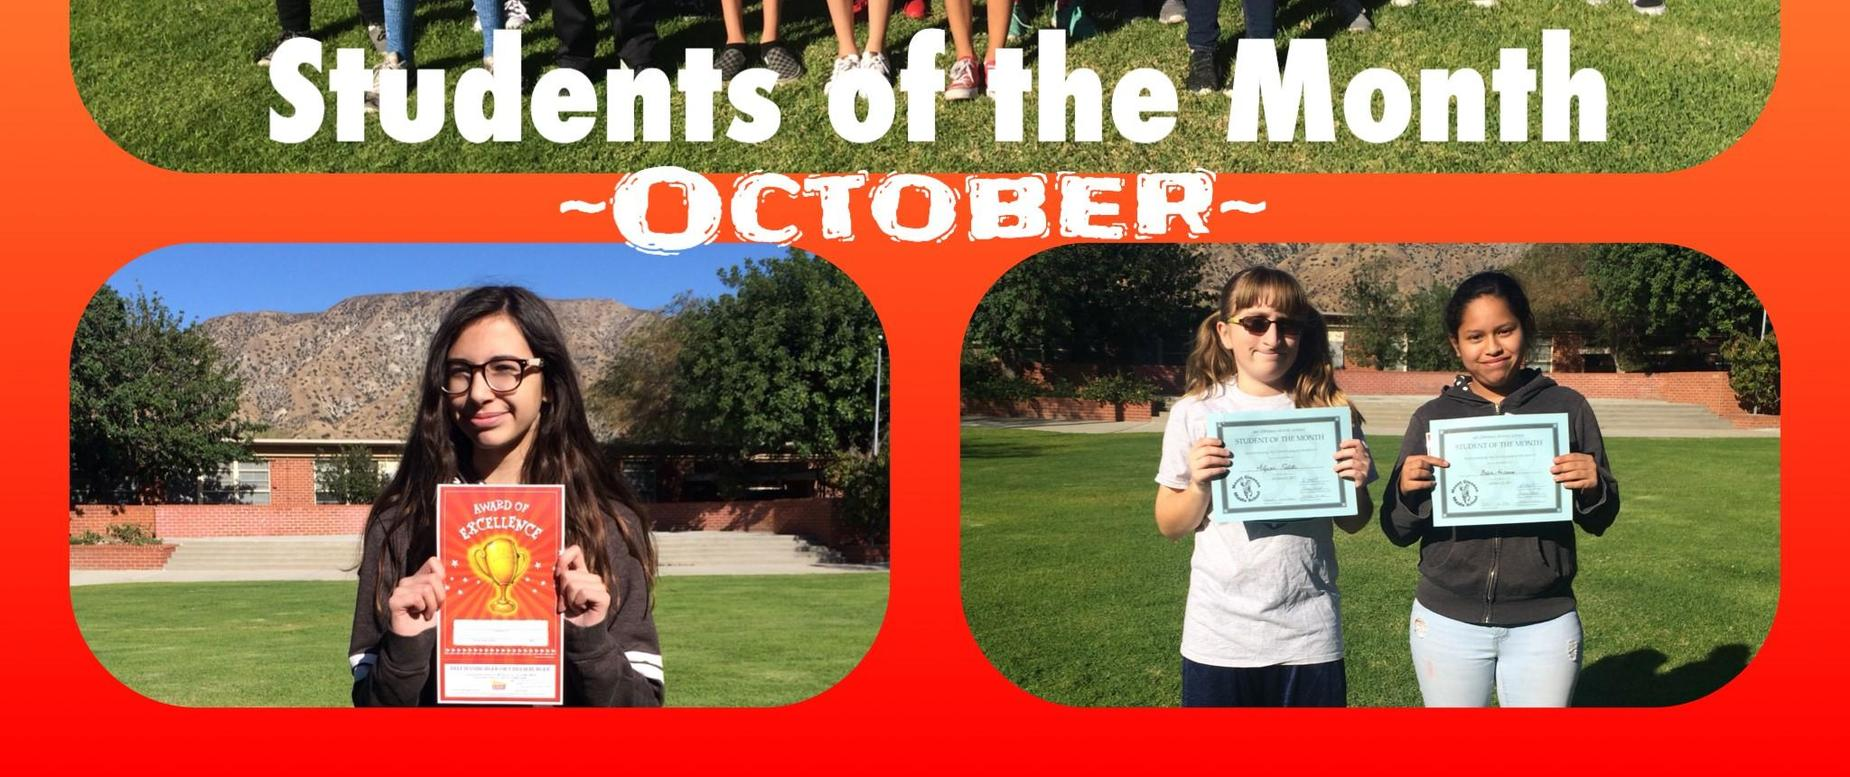 October's Students of the Month